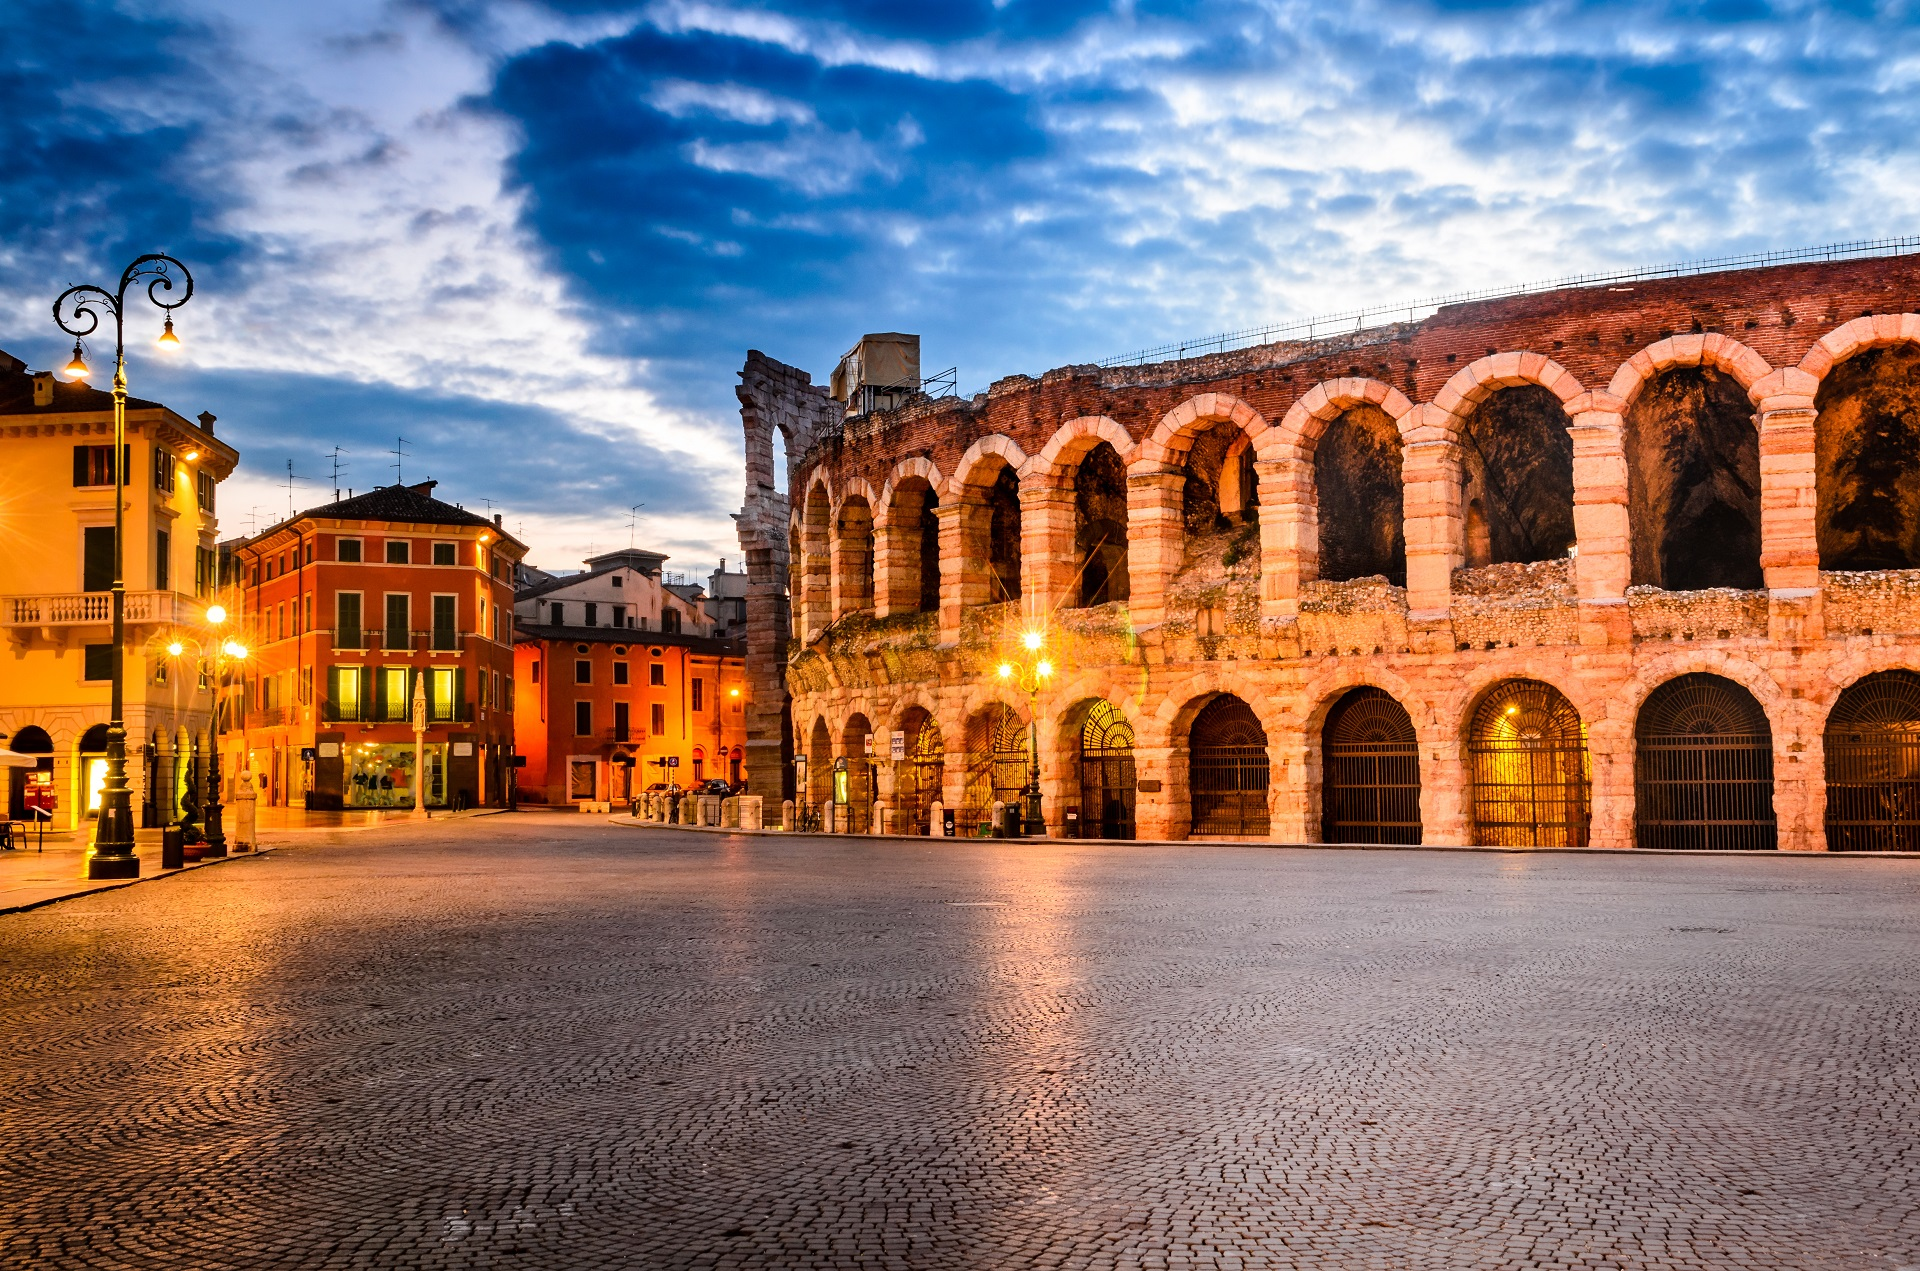 The arena in Verona at night